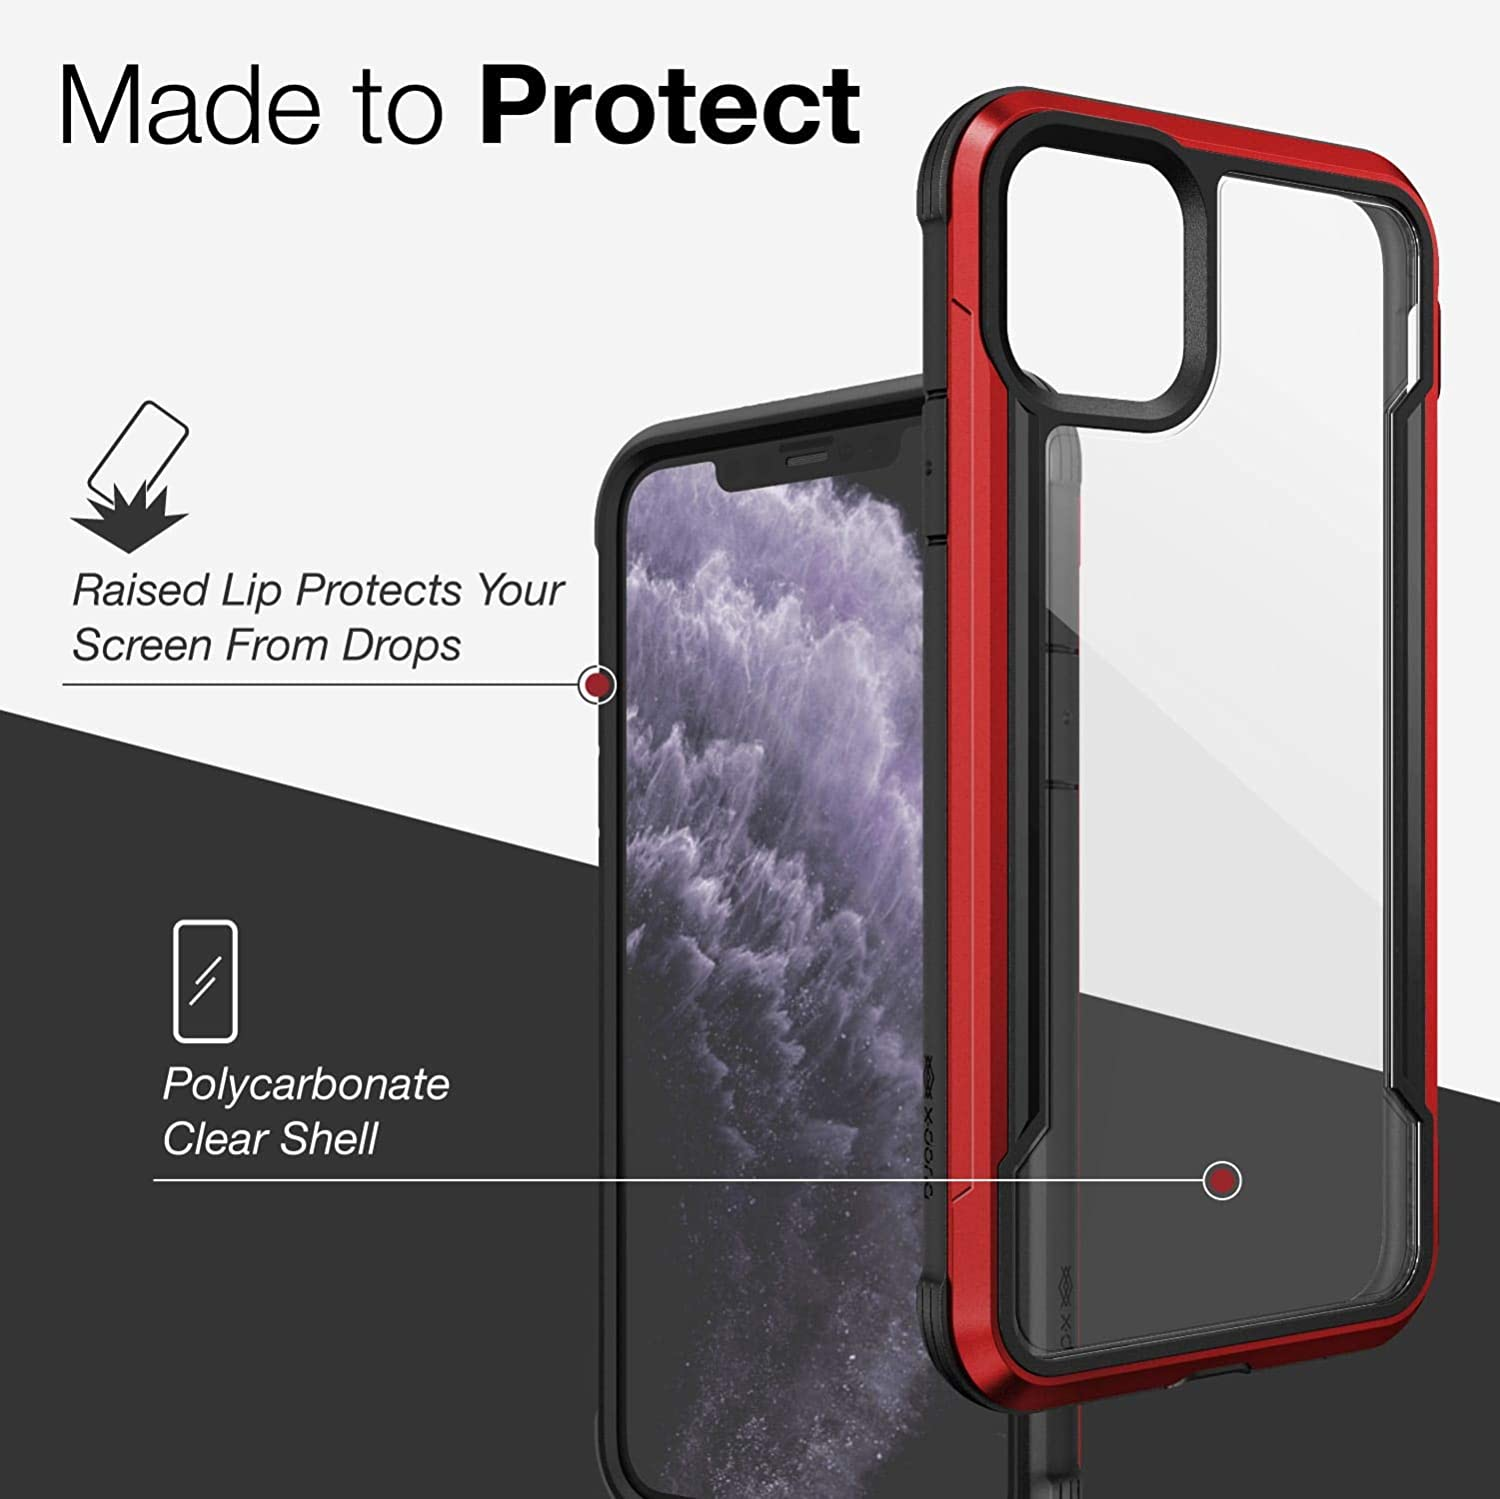 Anodized Aluminum iPhone 11 Pro Max Case and Polycarbonate Protective Case for Apple iPhone 11 Pro Max, Red TPU Defense Shield Series Military Grade Drop Tested